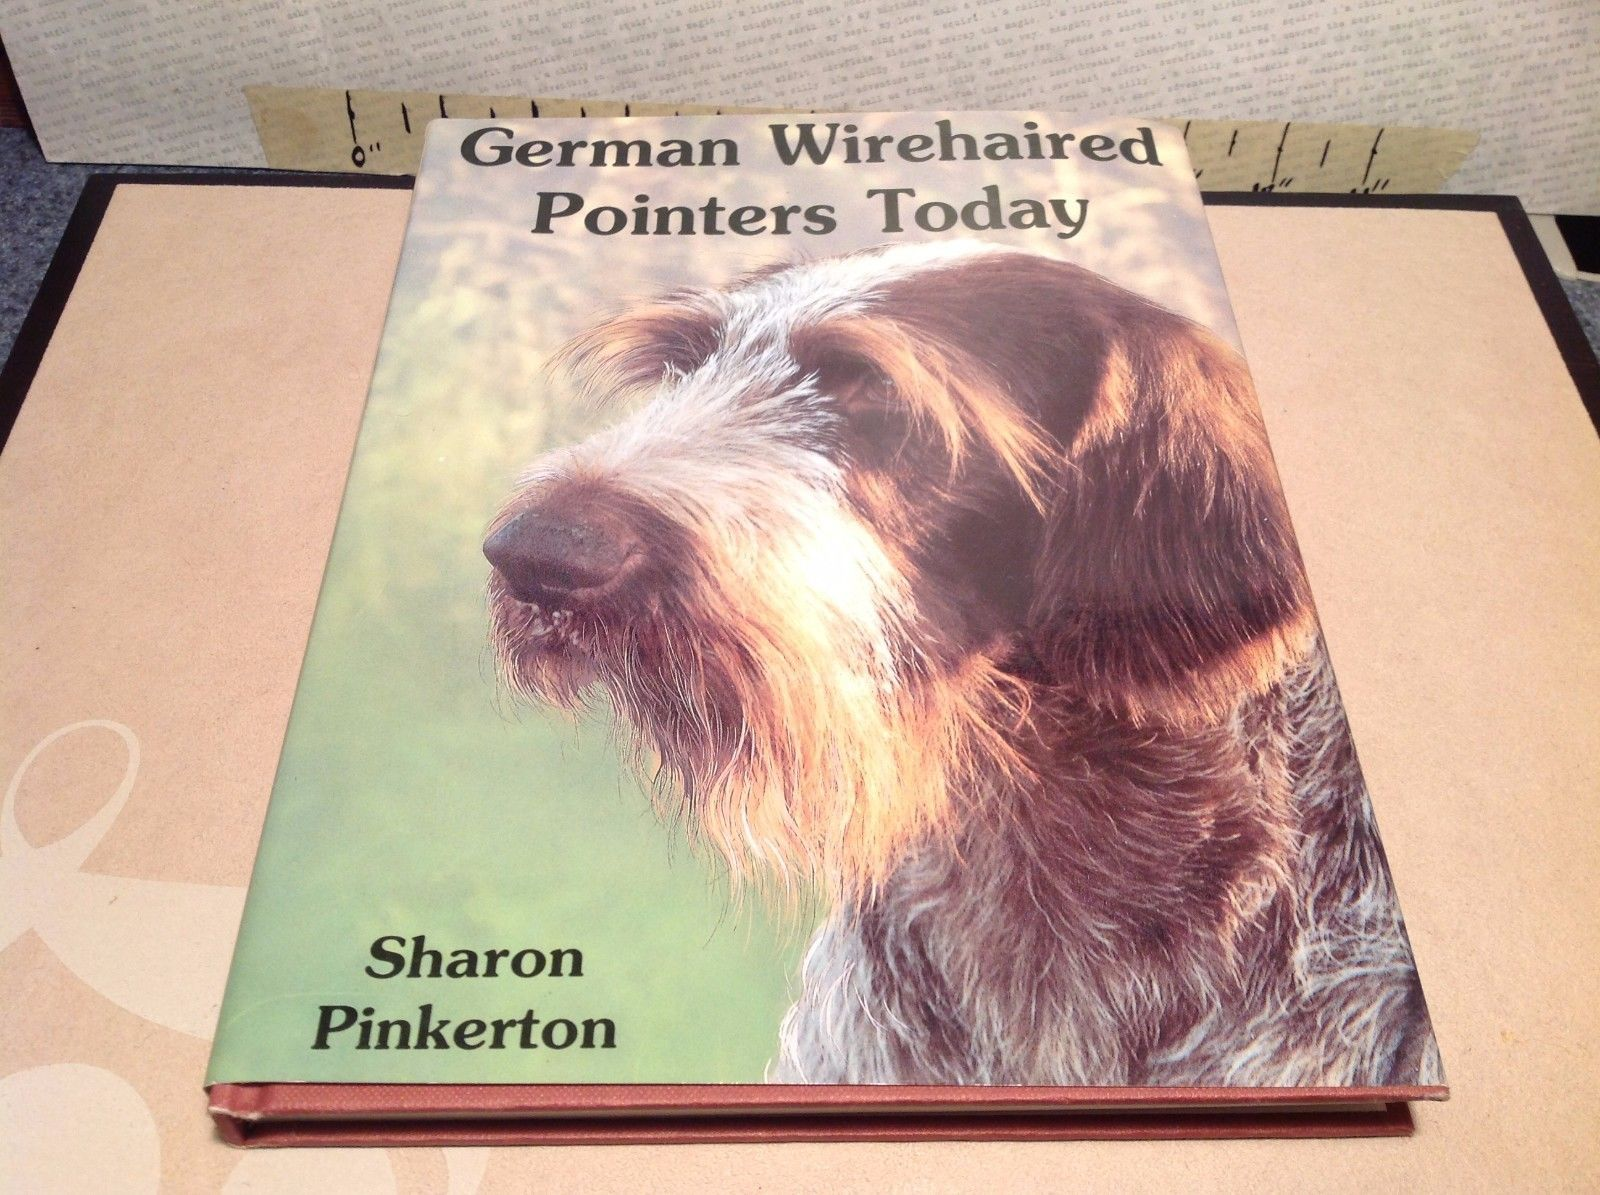 German Wirehaired Pointers Today Book by Sharon Pinkerton